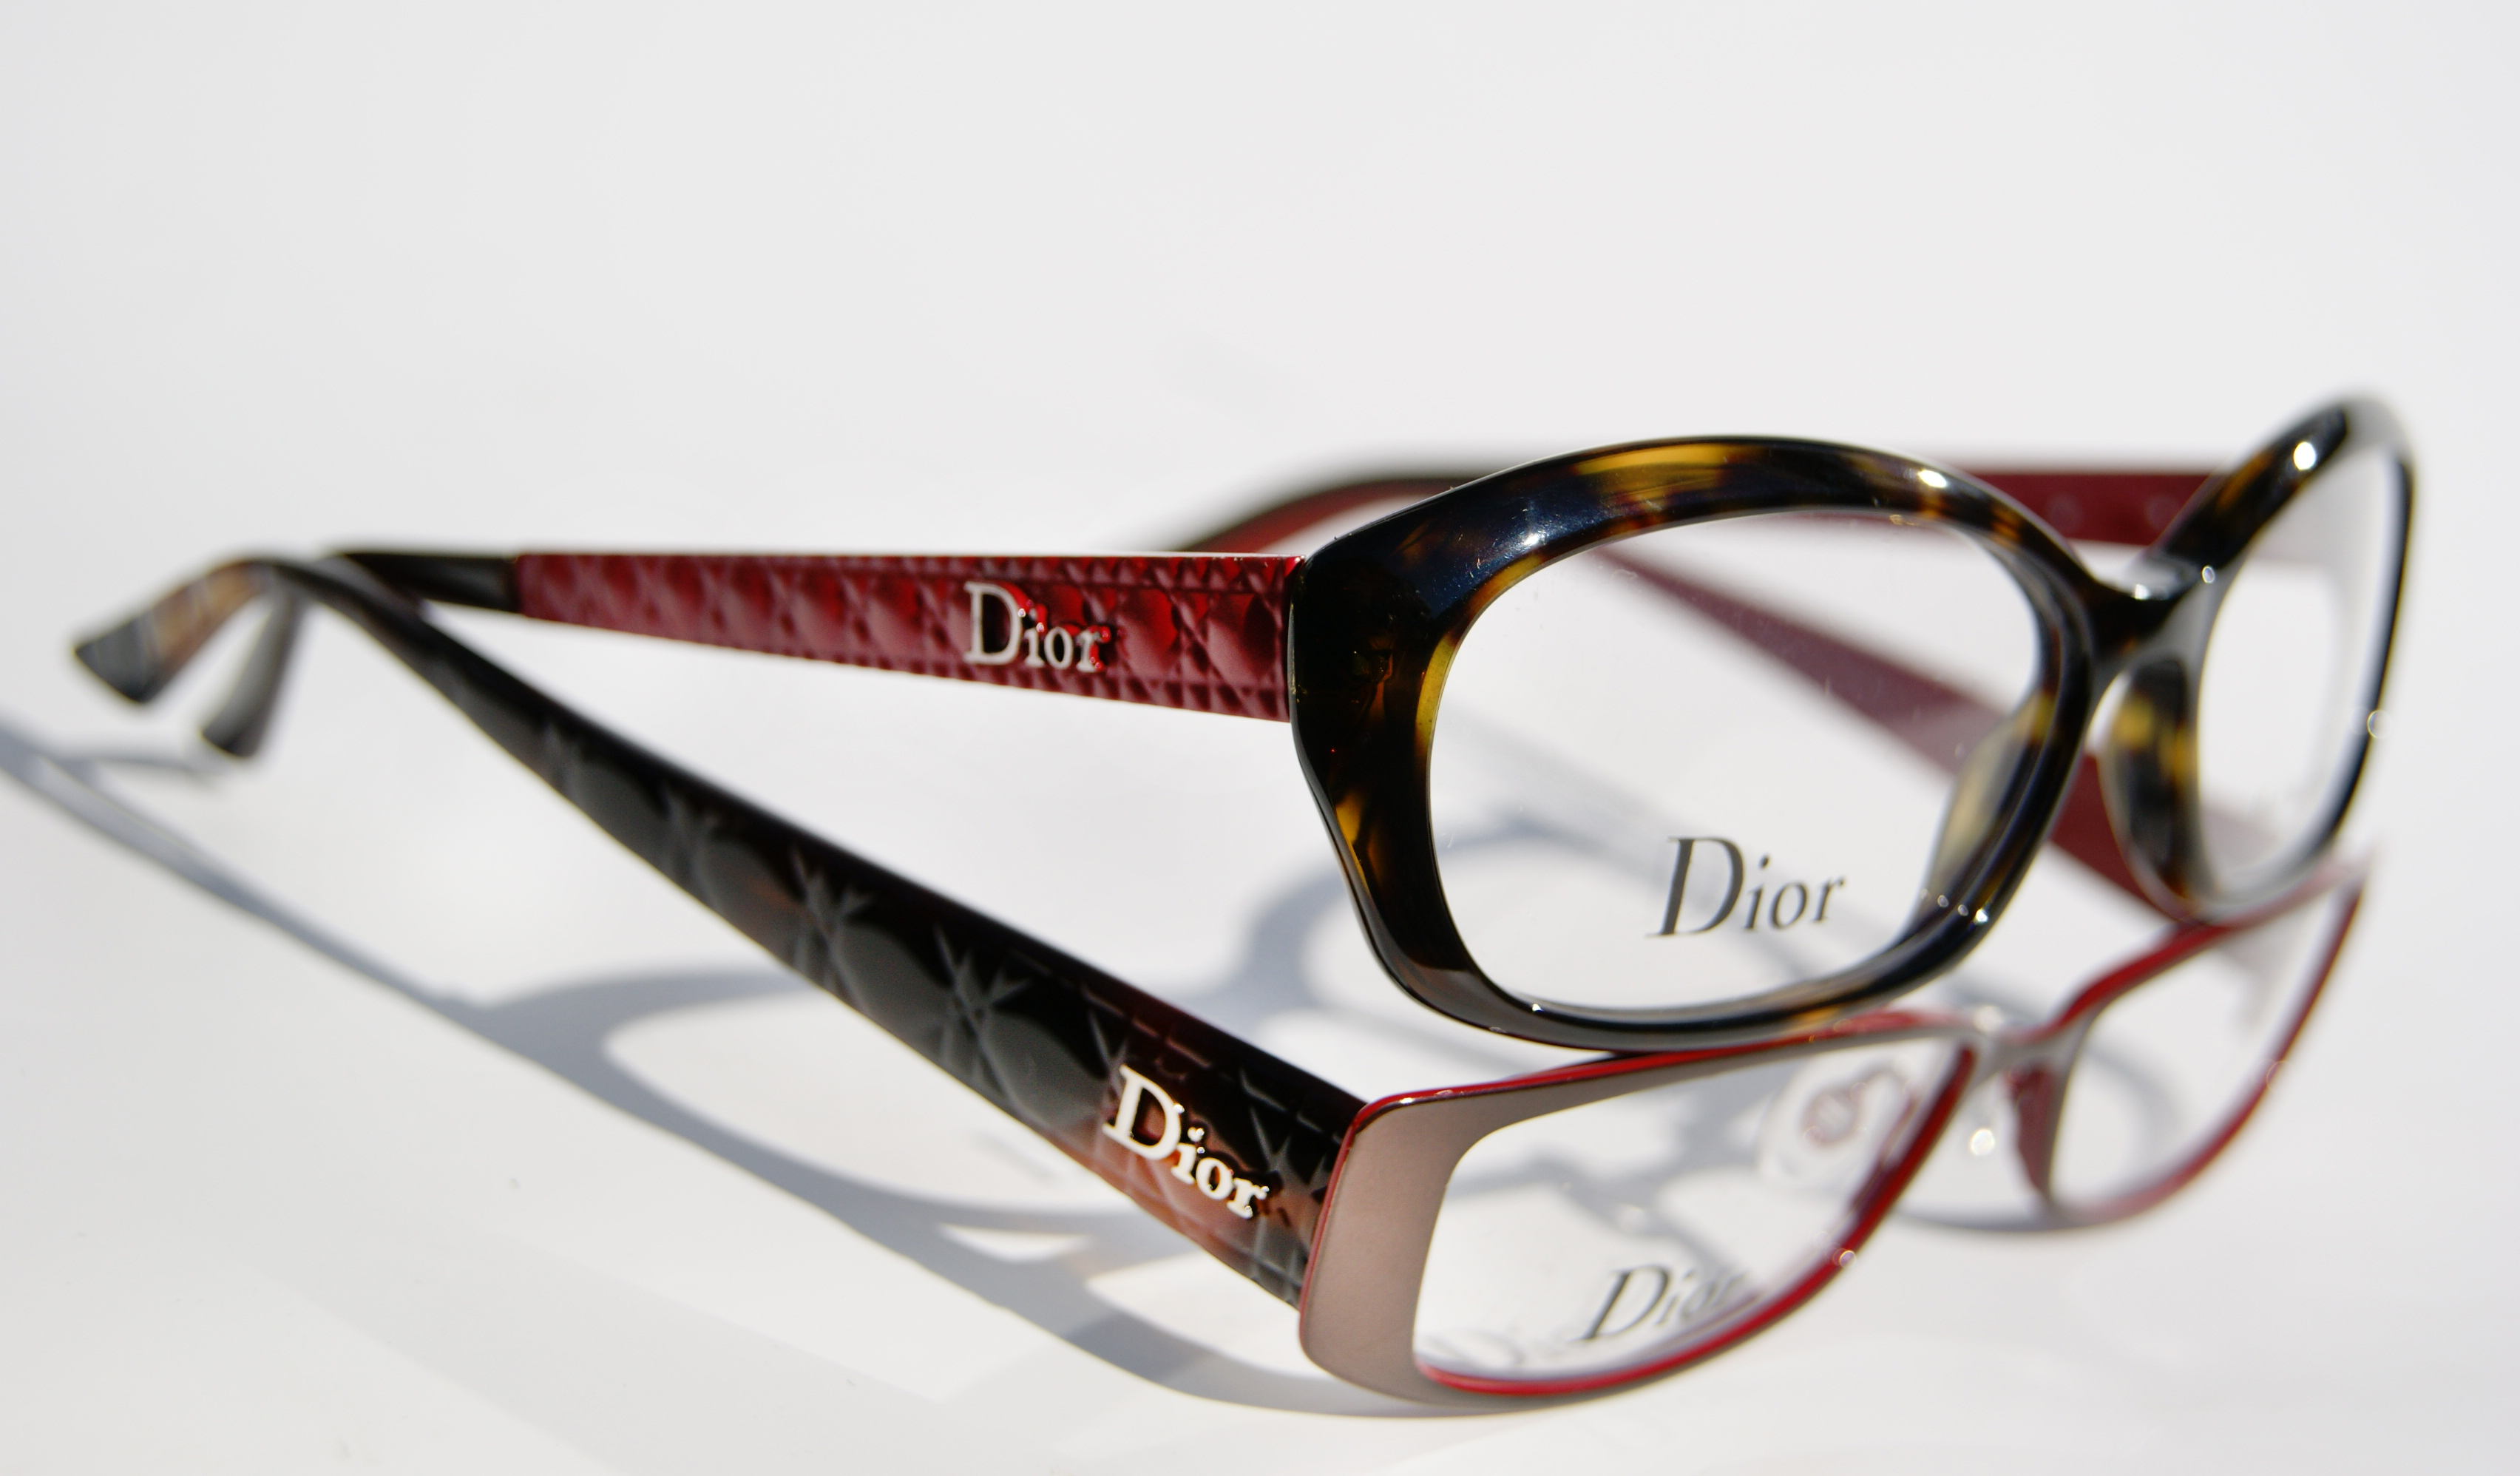 Christian Dior Eyewear Collection